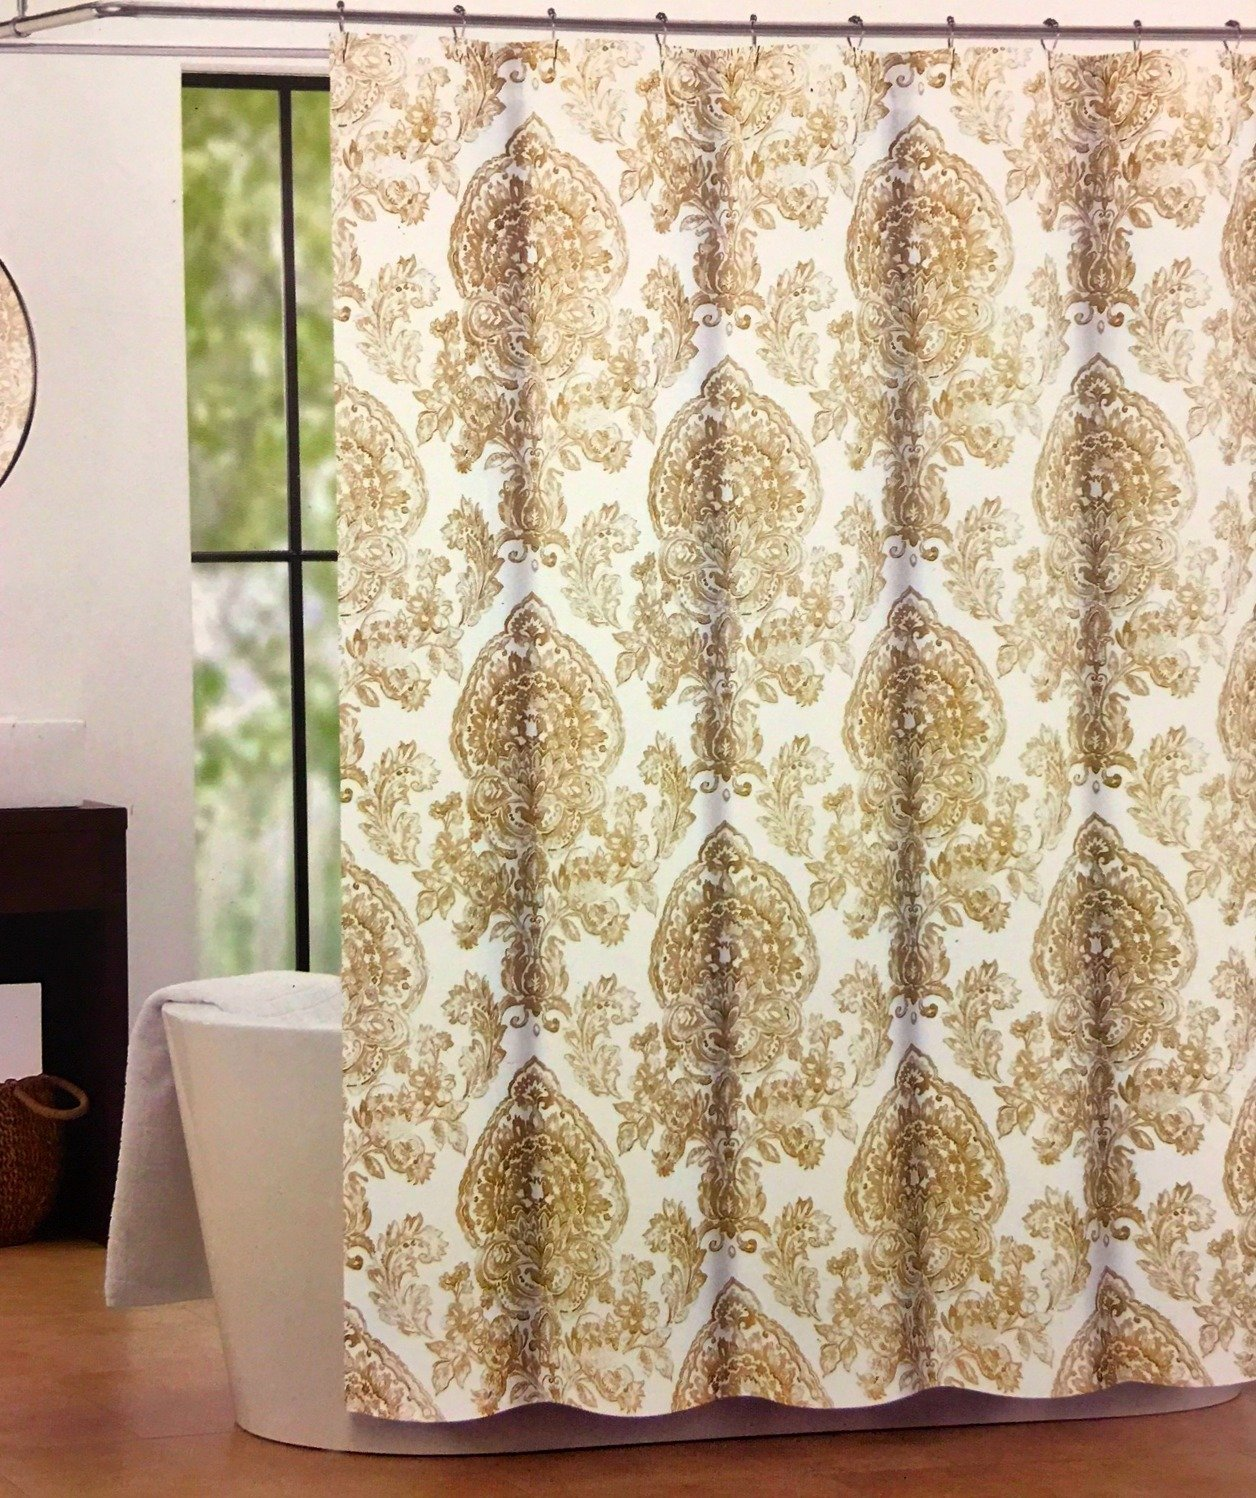 Tahari Cognac Damask Shower Curtain Caf Latte Country French Medallions On White